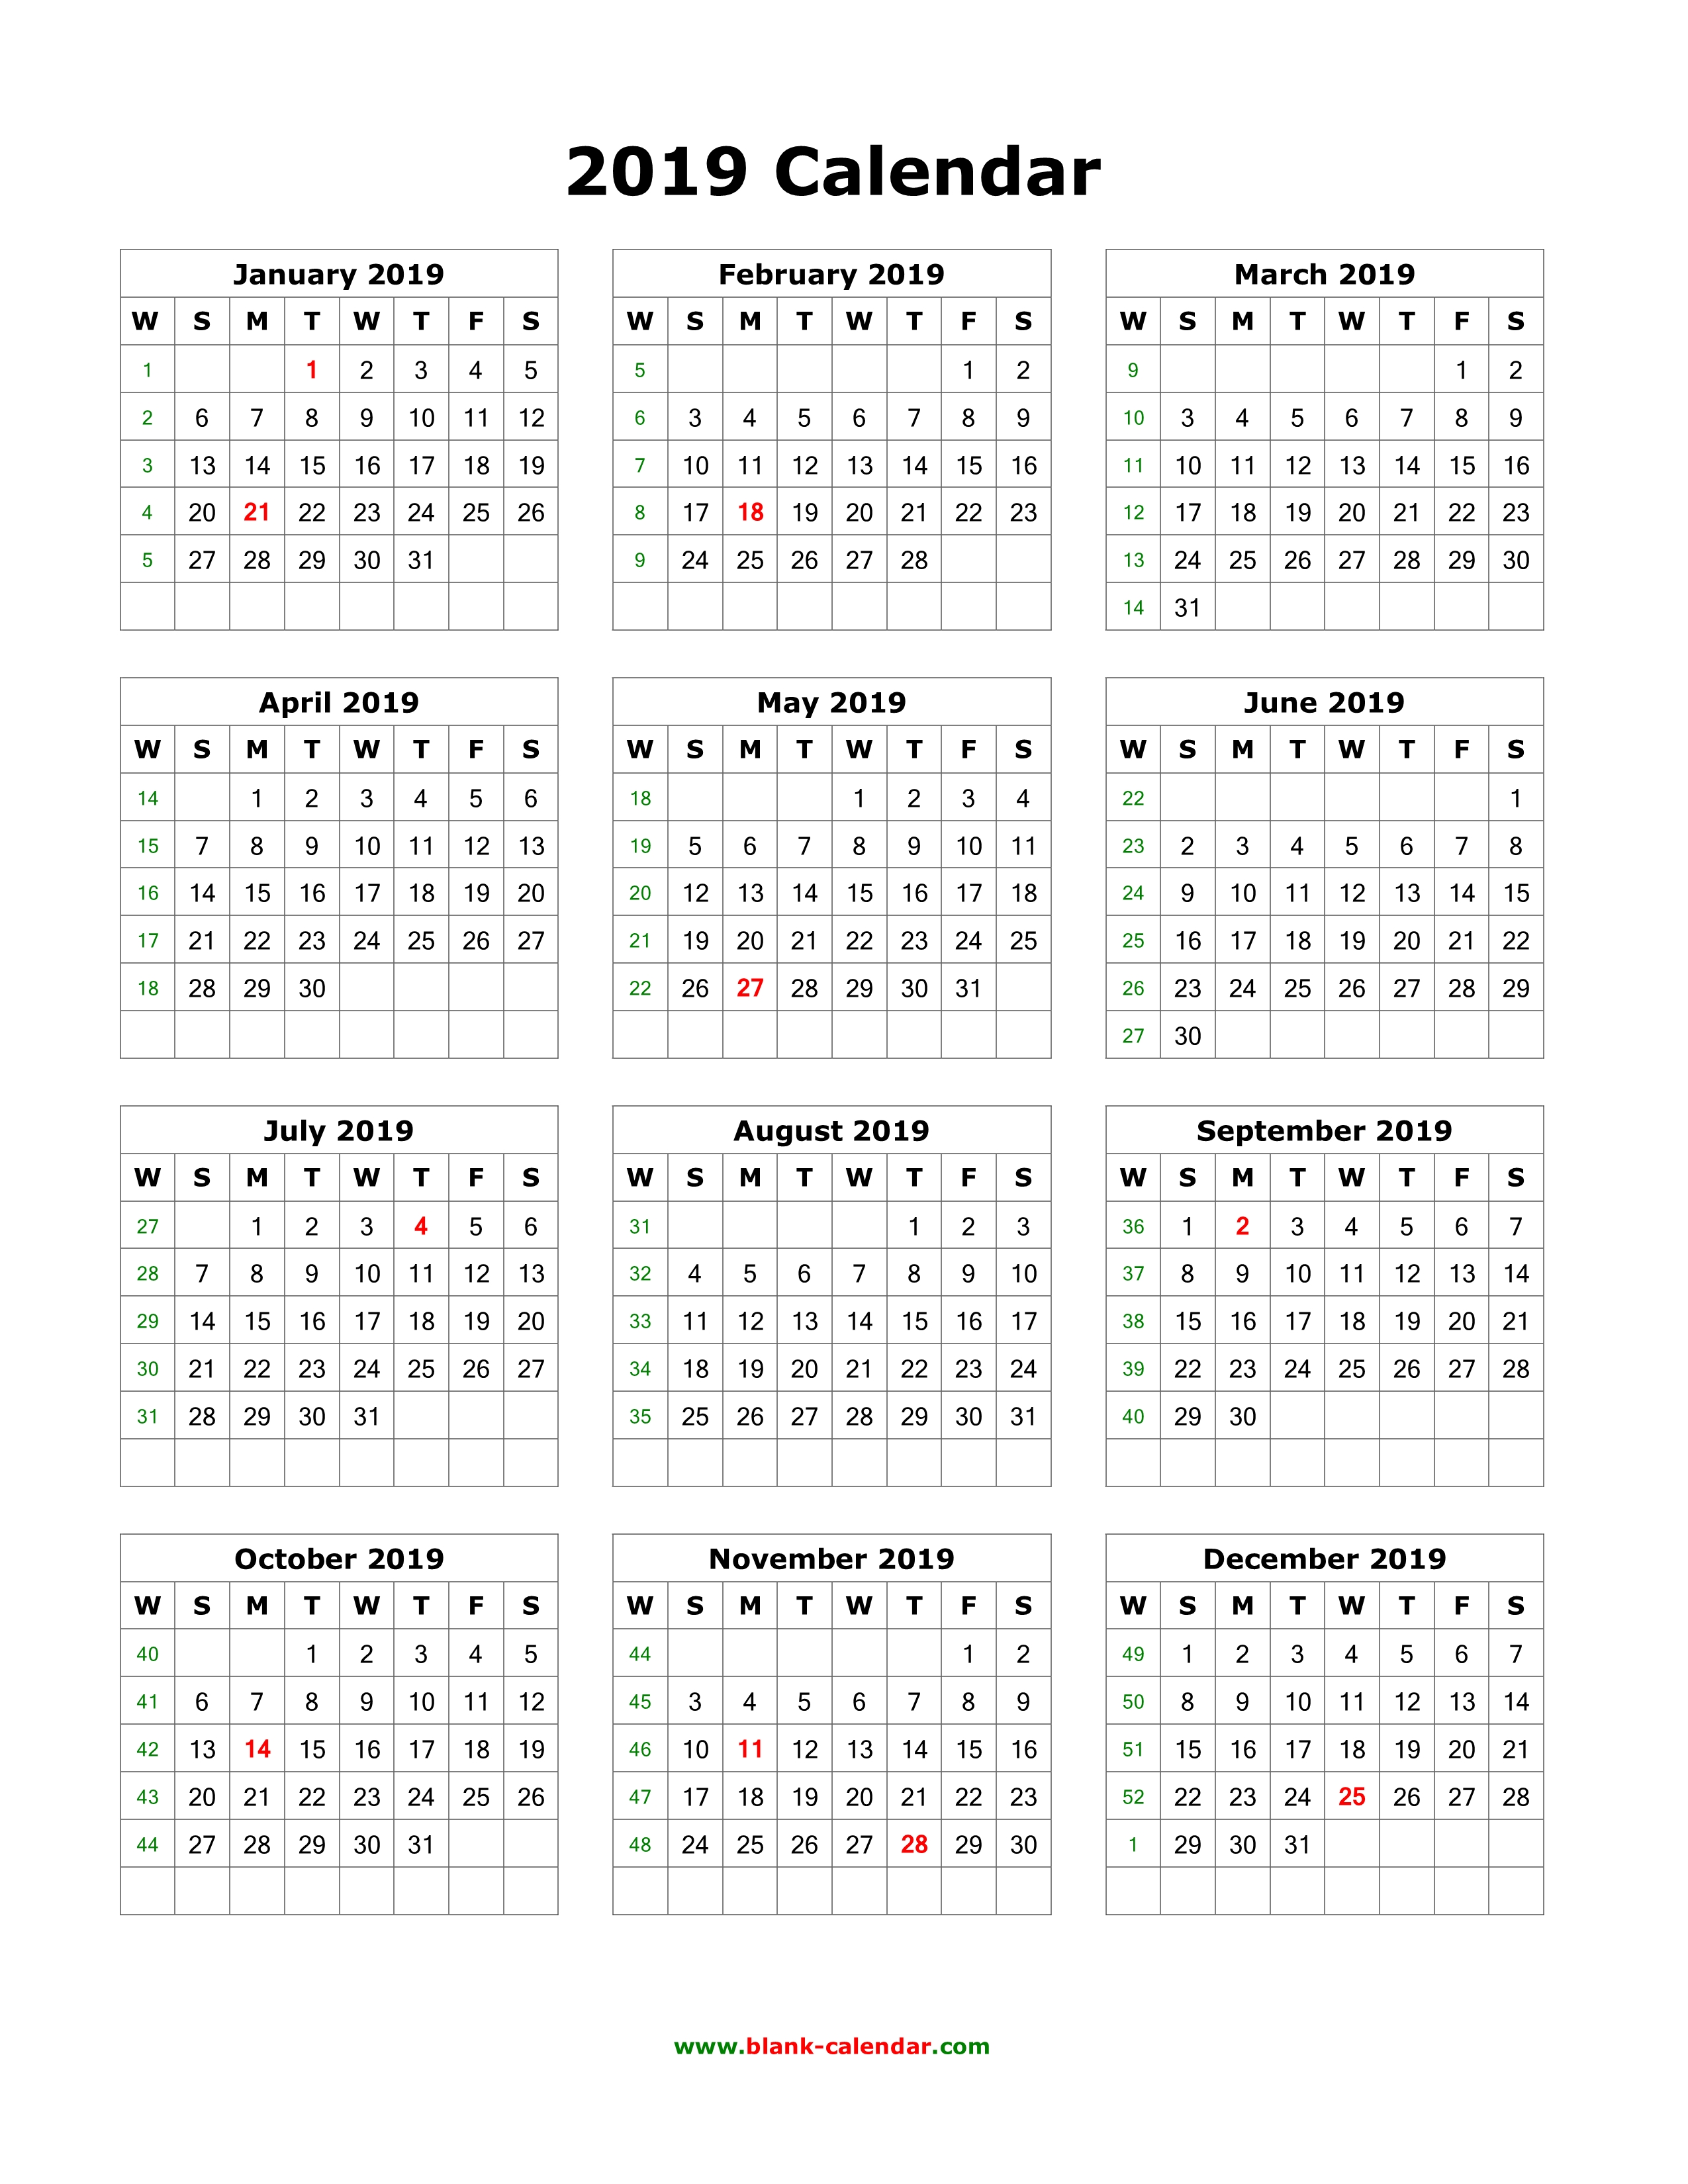 2019 Year Calendar One Page With Download Blank 12 Months On Vertical